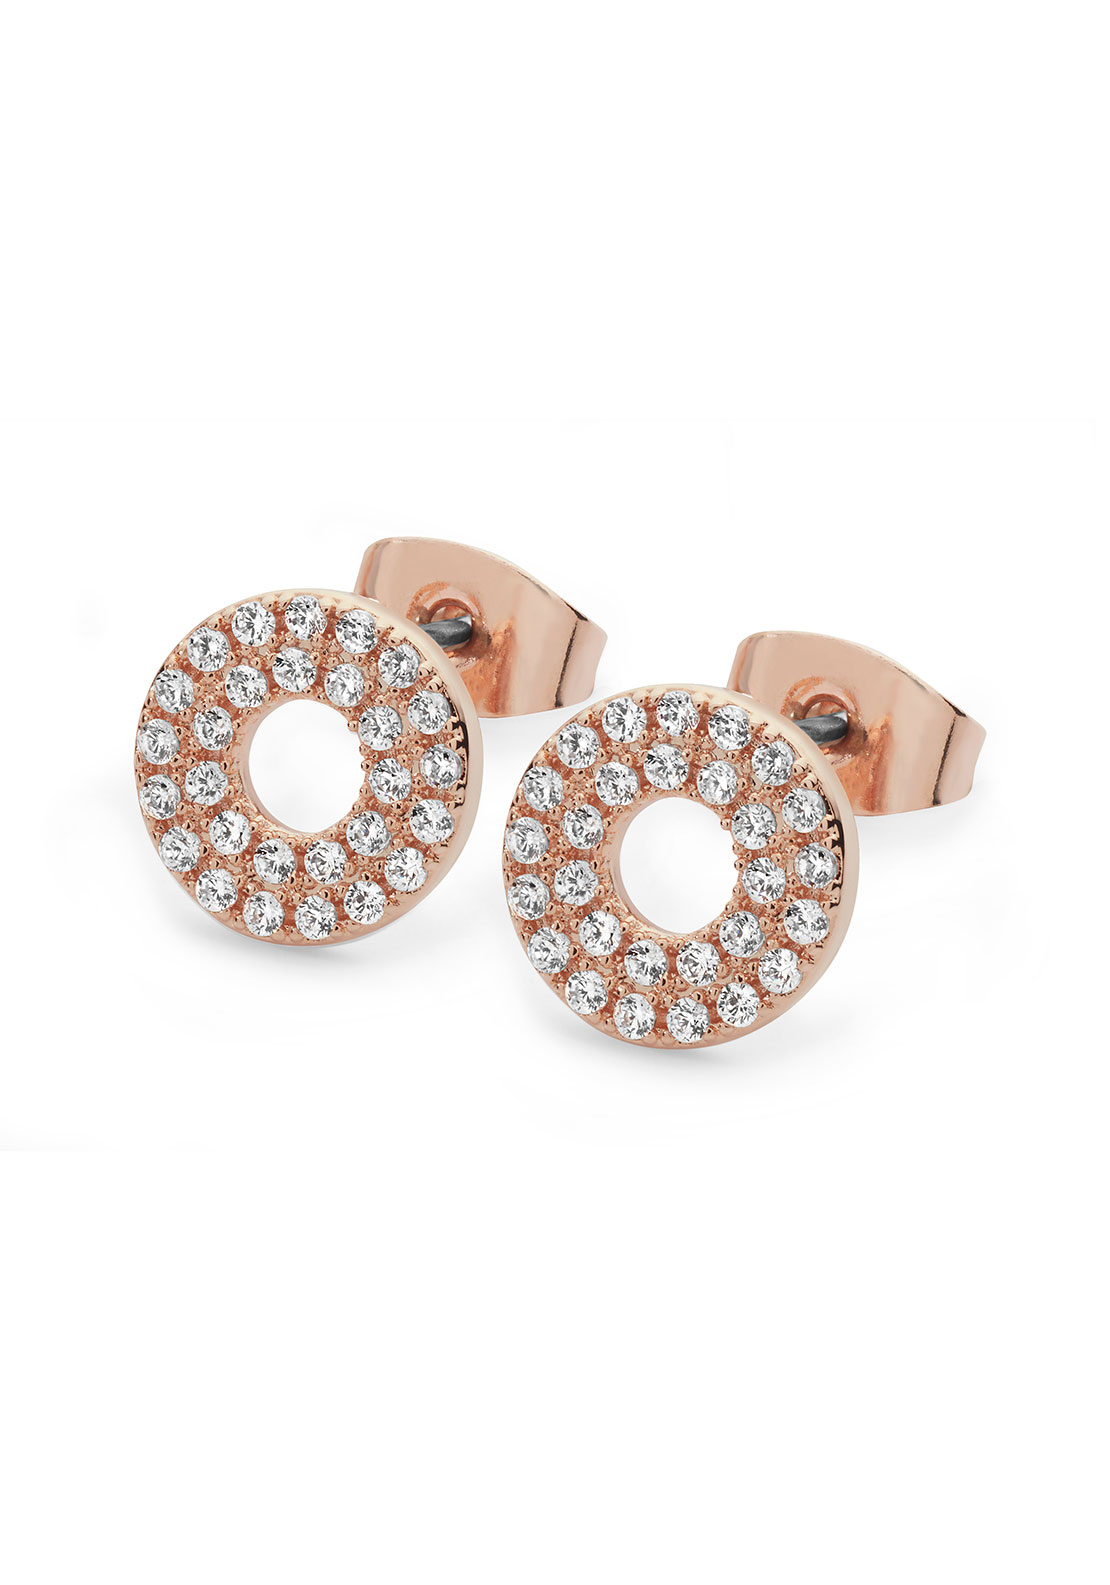 Tipperary Crystal Pave Triple Band Moon Earrings